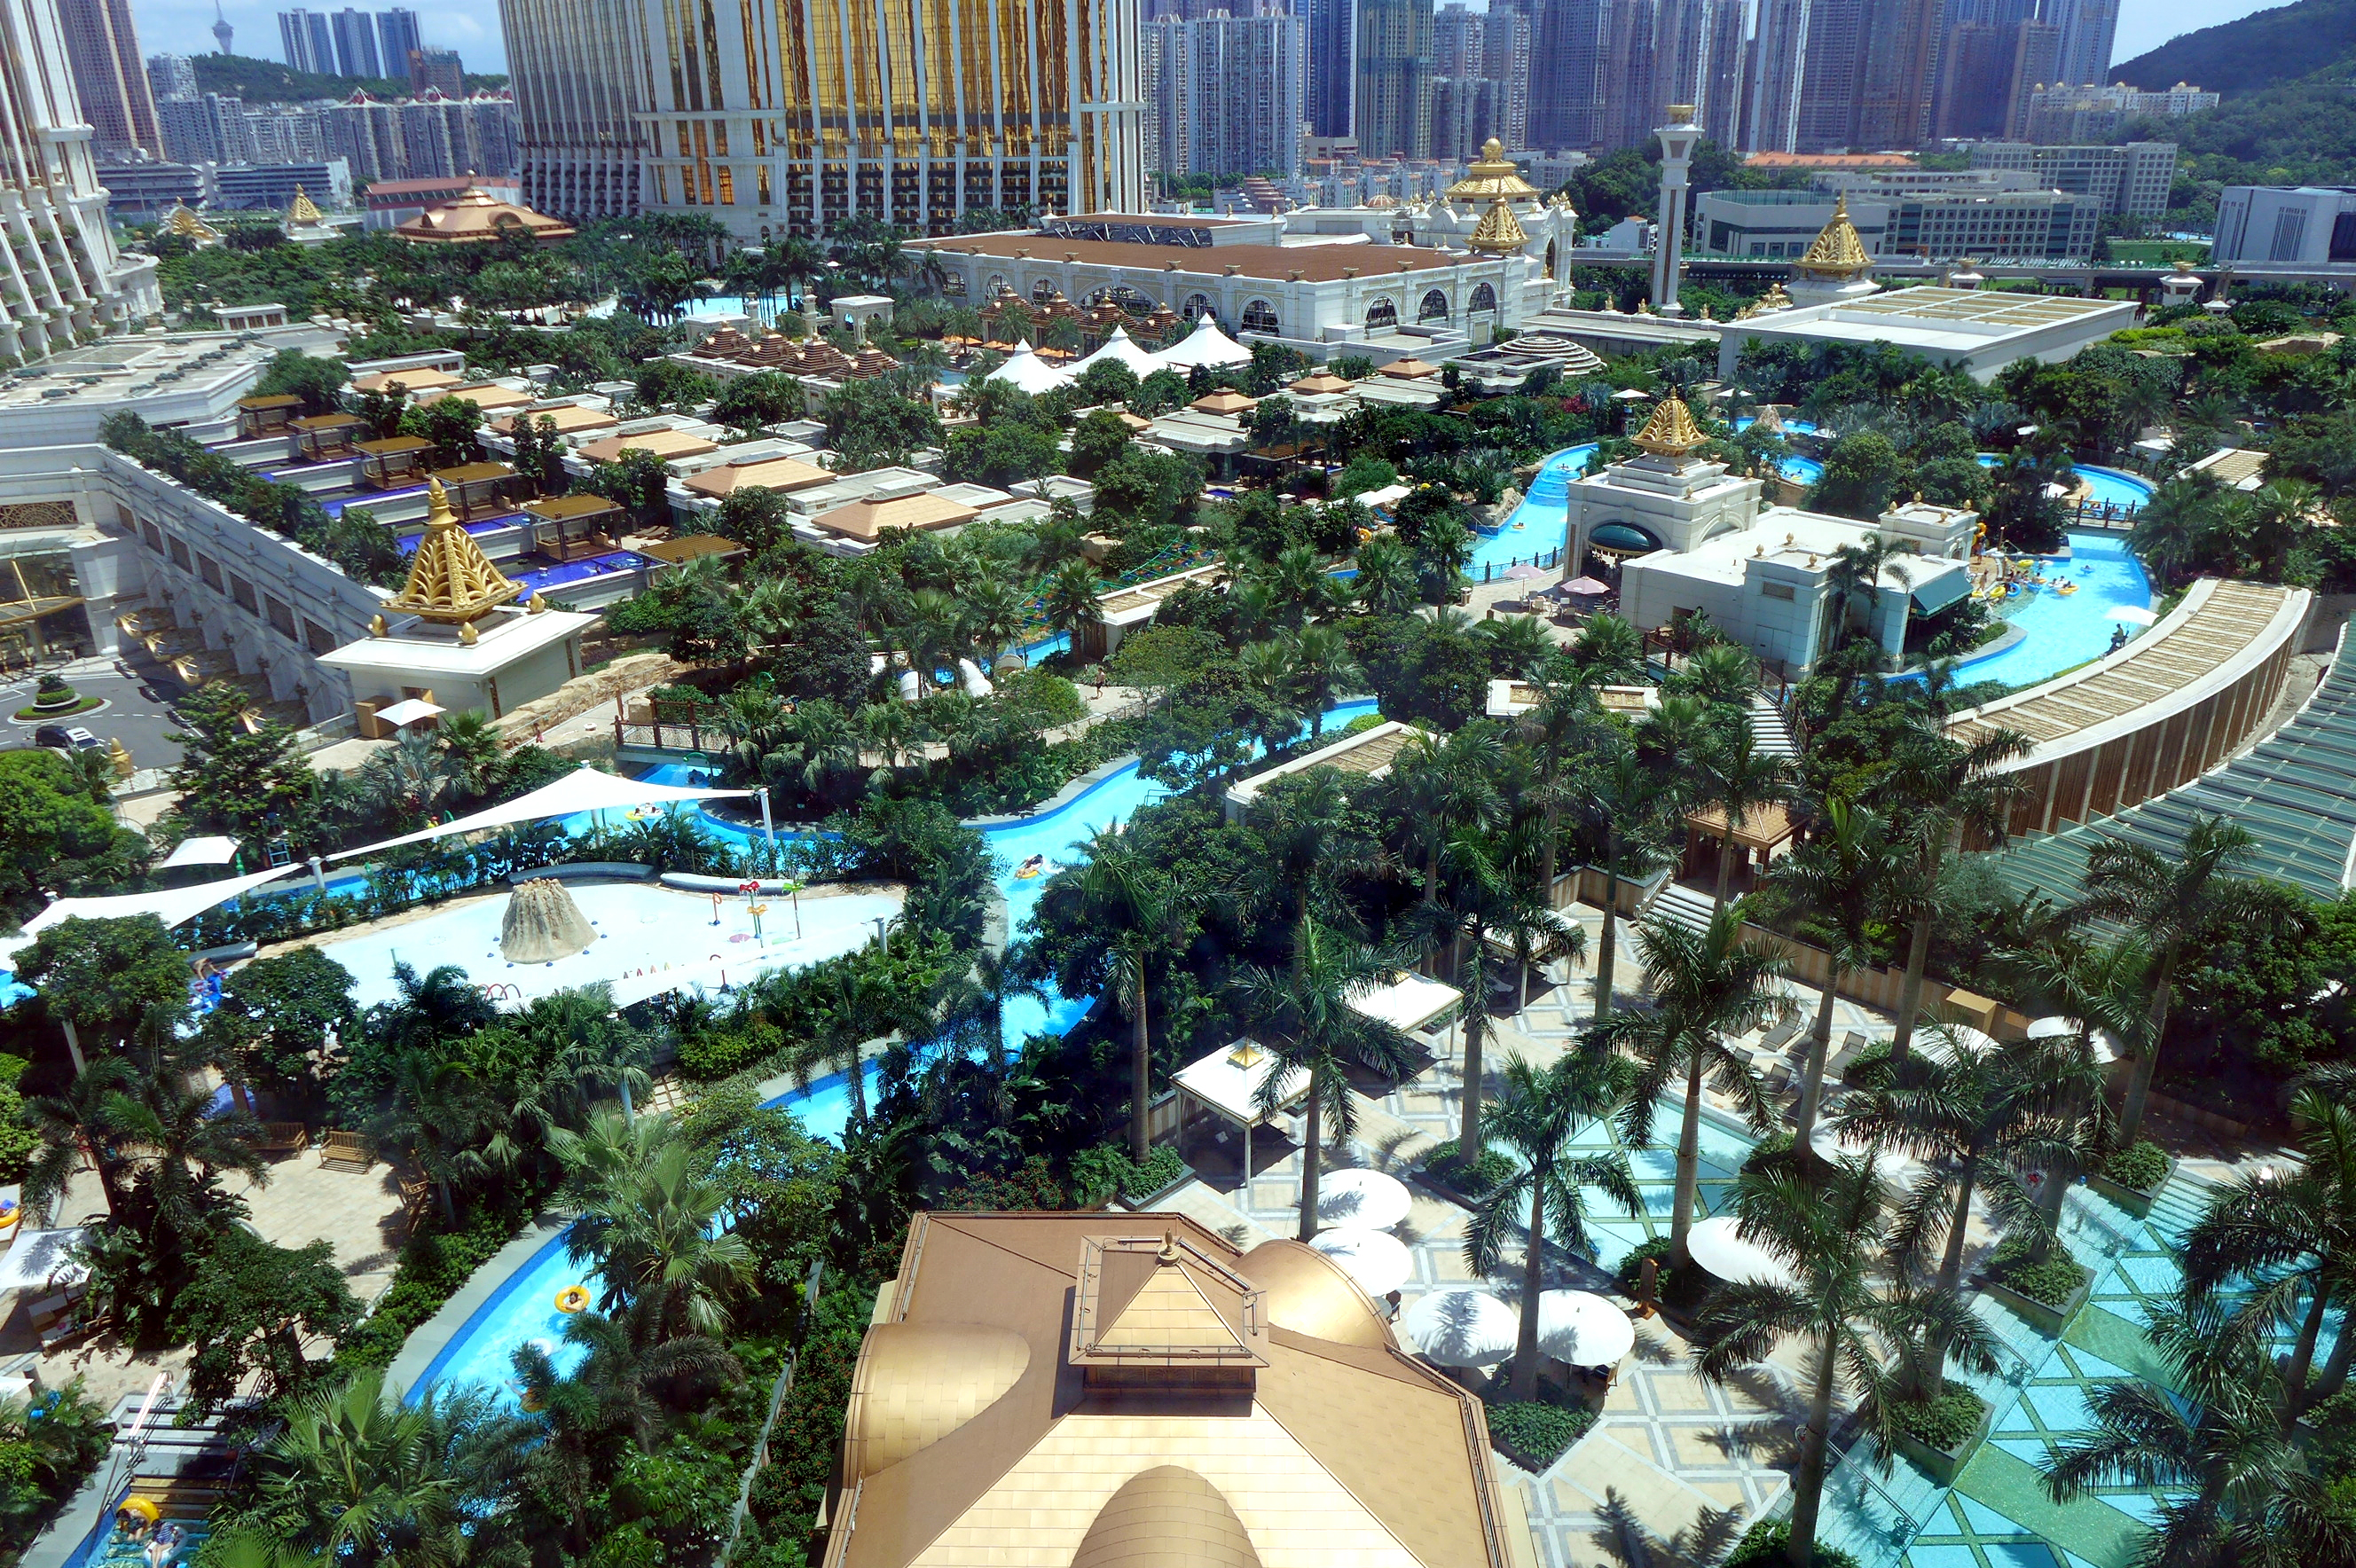 Galaxy Macau Wikipedia